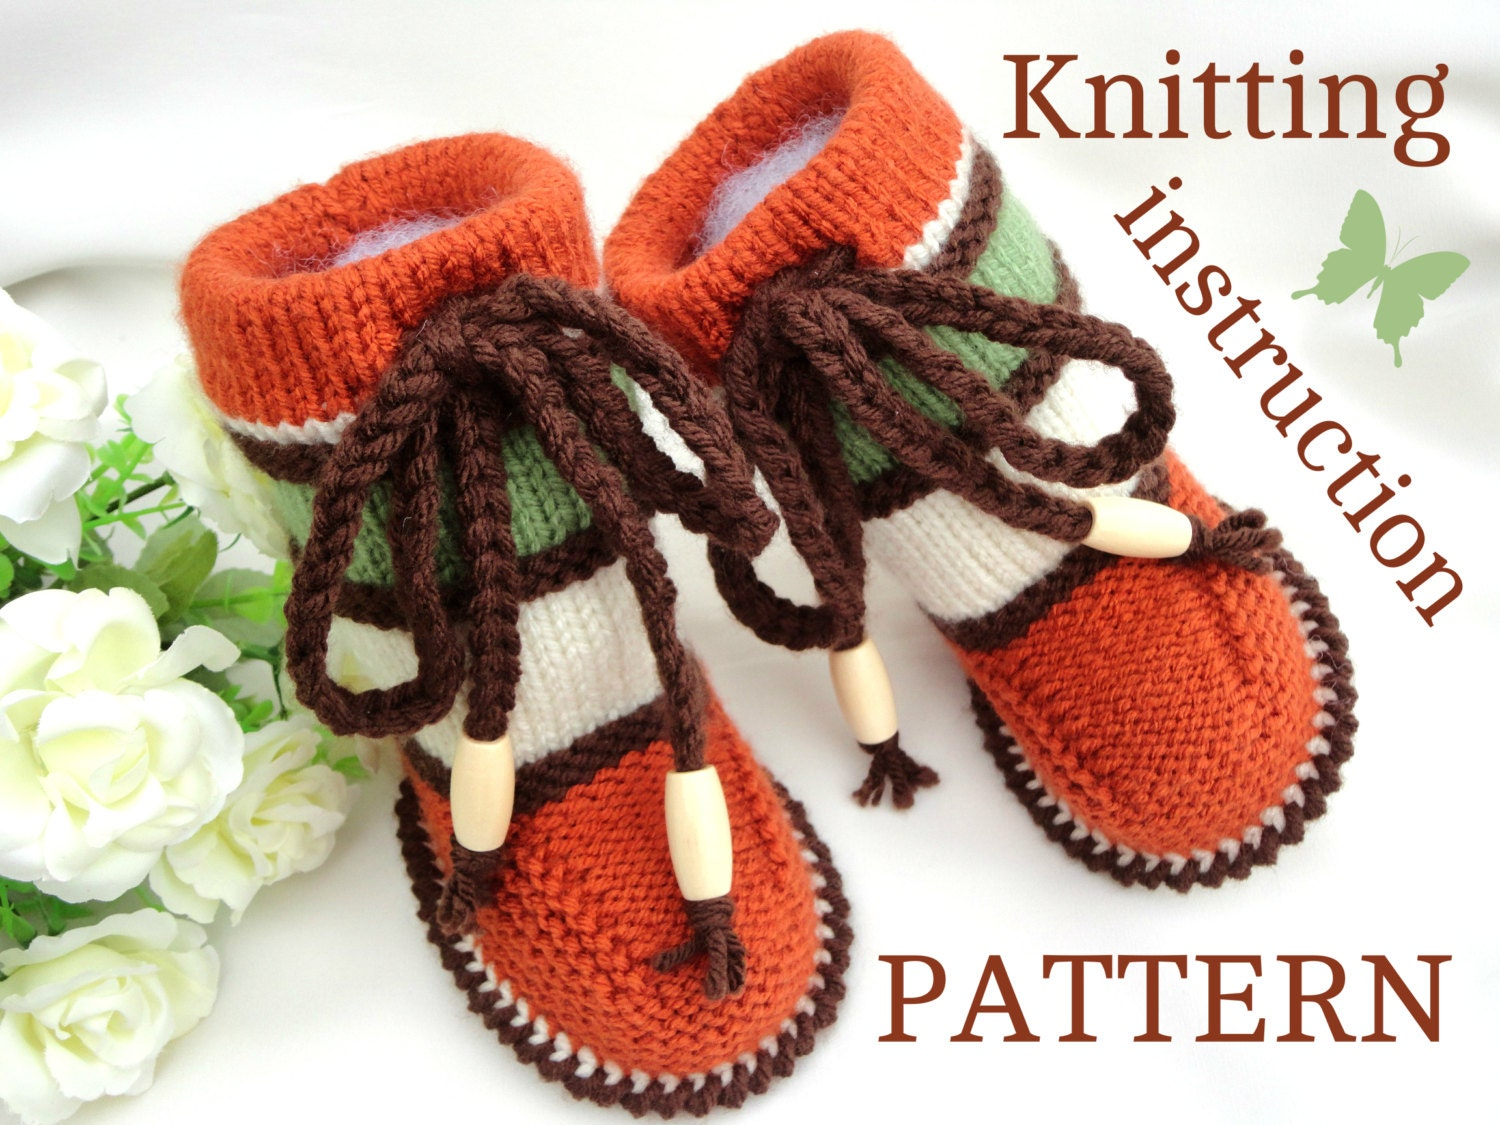 Knitting Shoes Patterns : Knitting pattern baby booties knit shoes boy